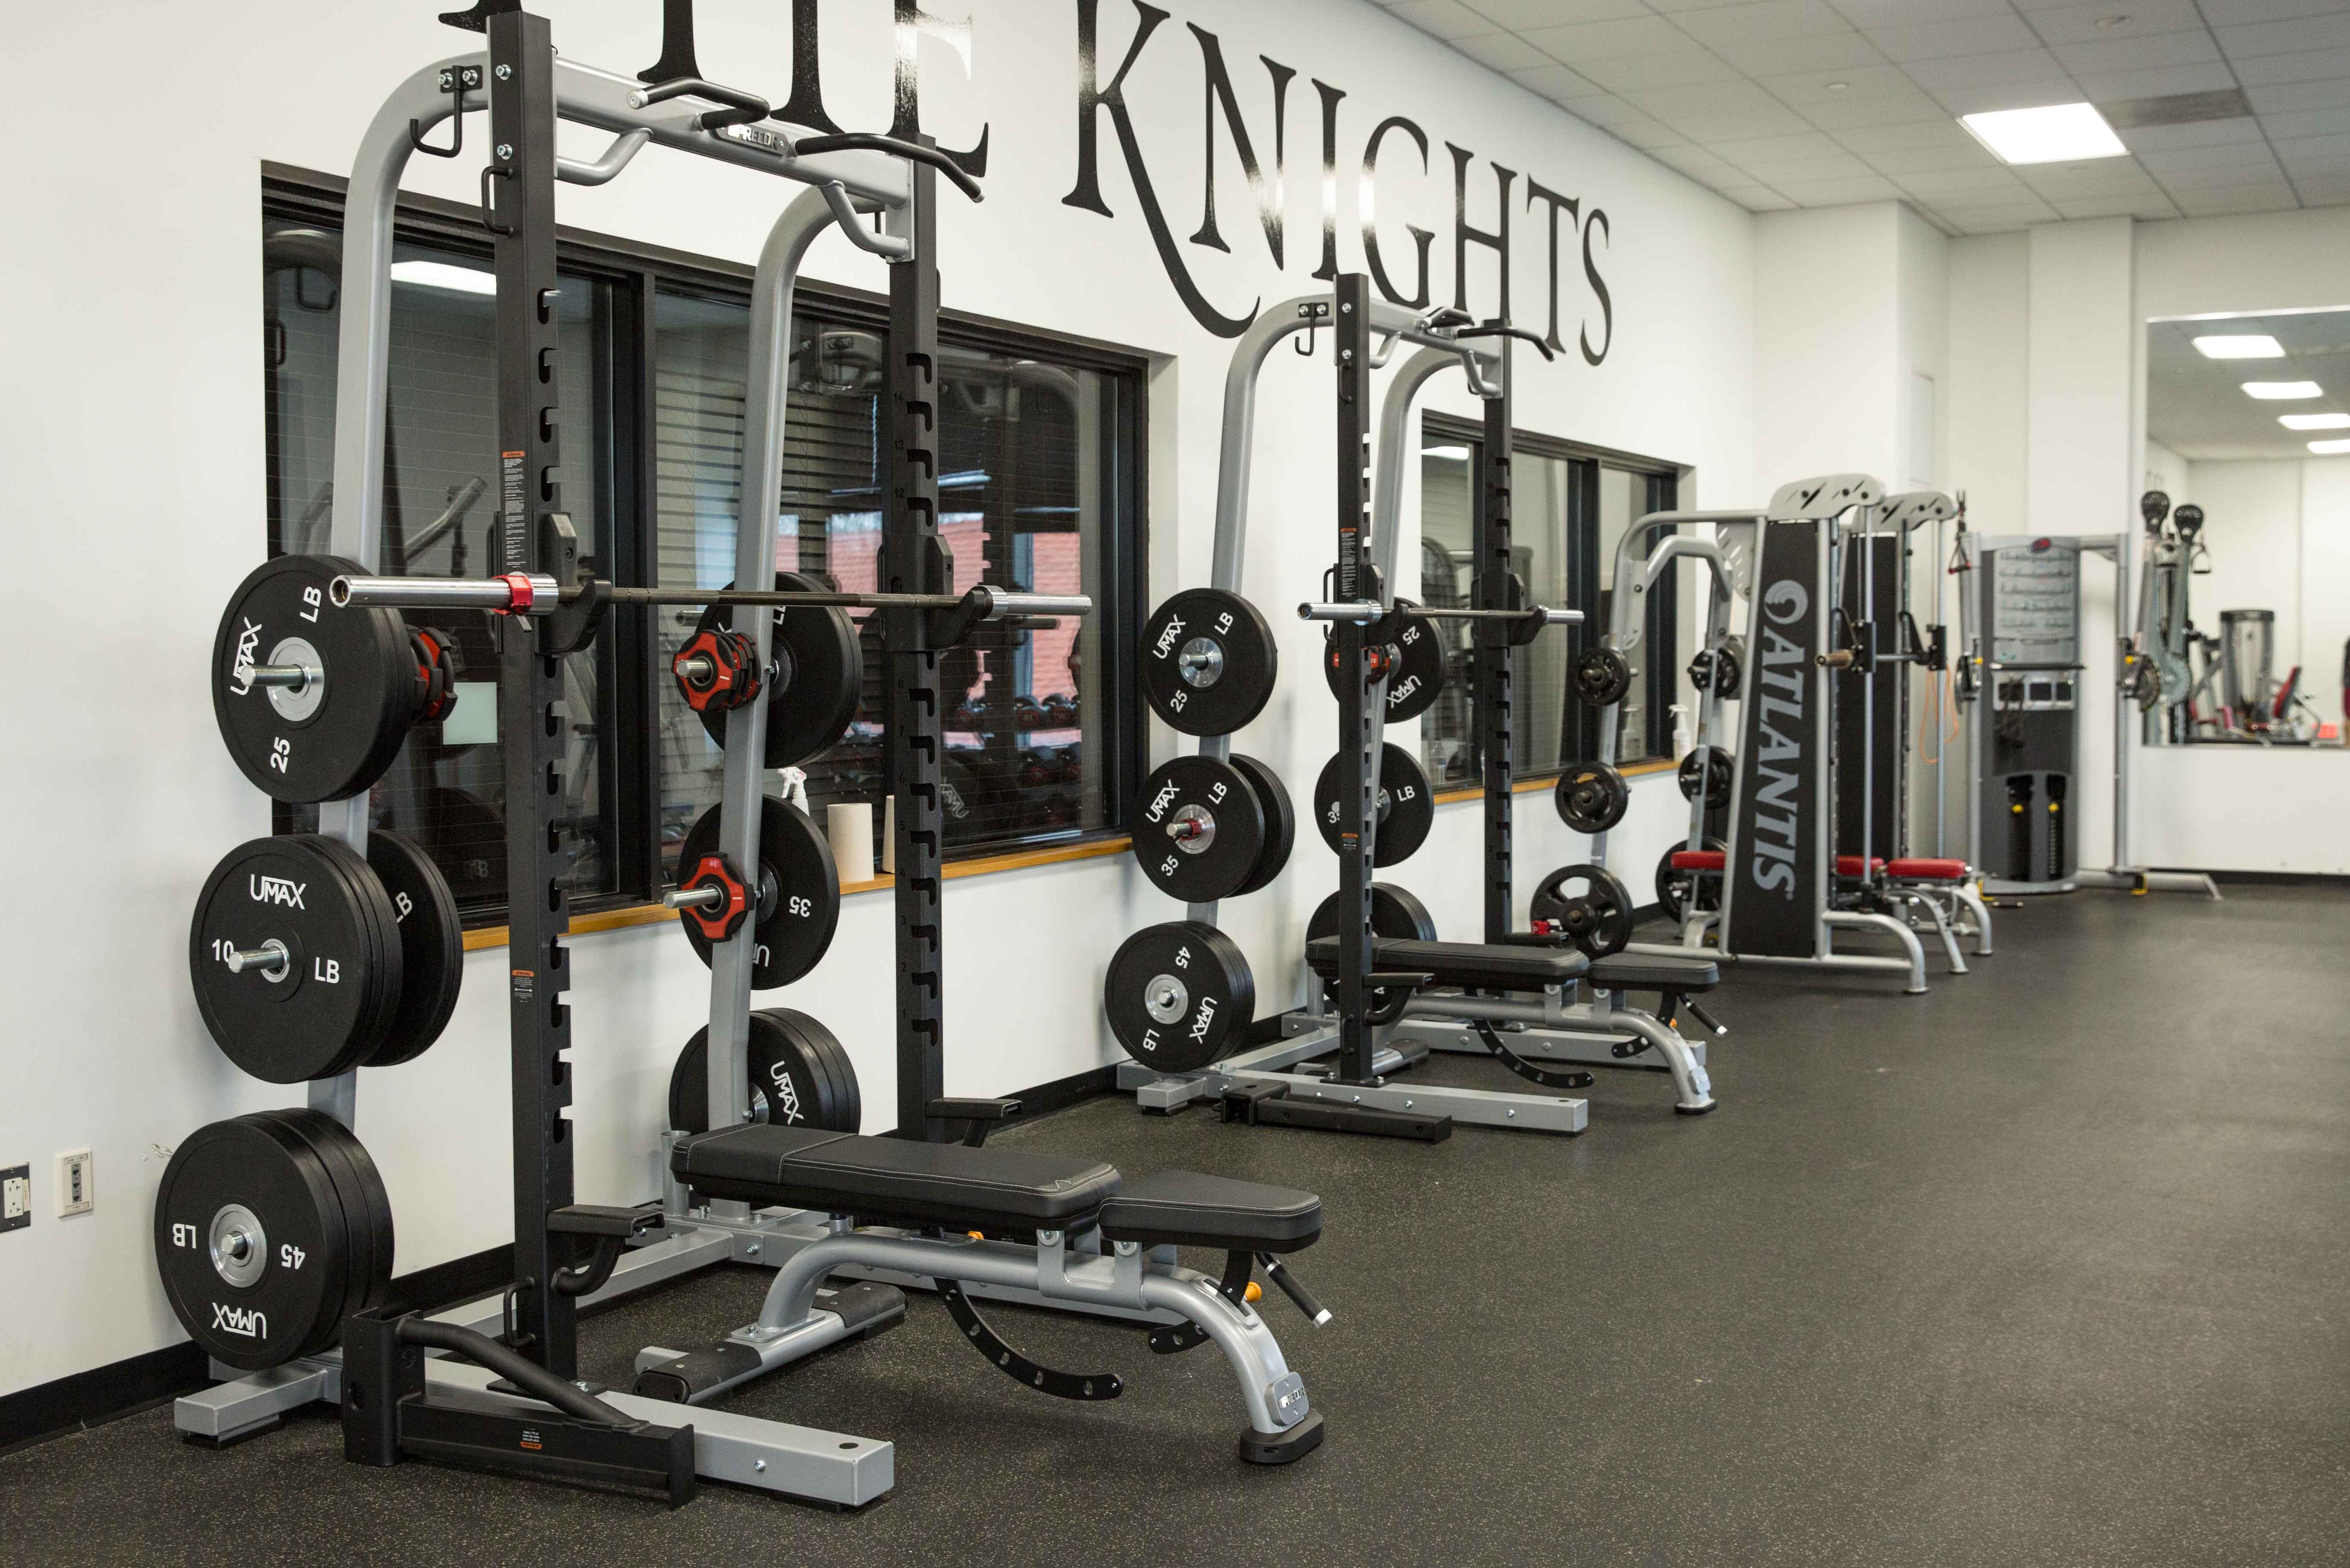 Image of new weightlifting equipment in the fitness center.